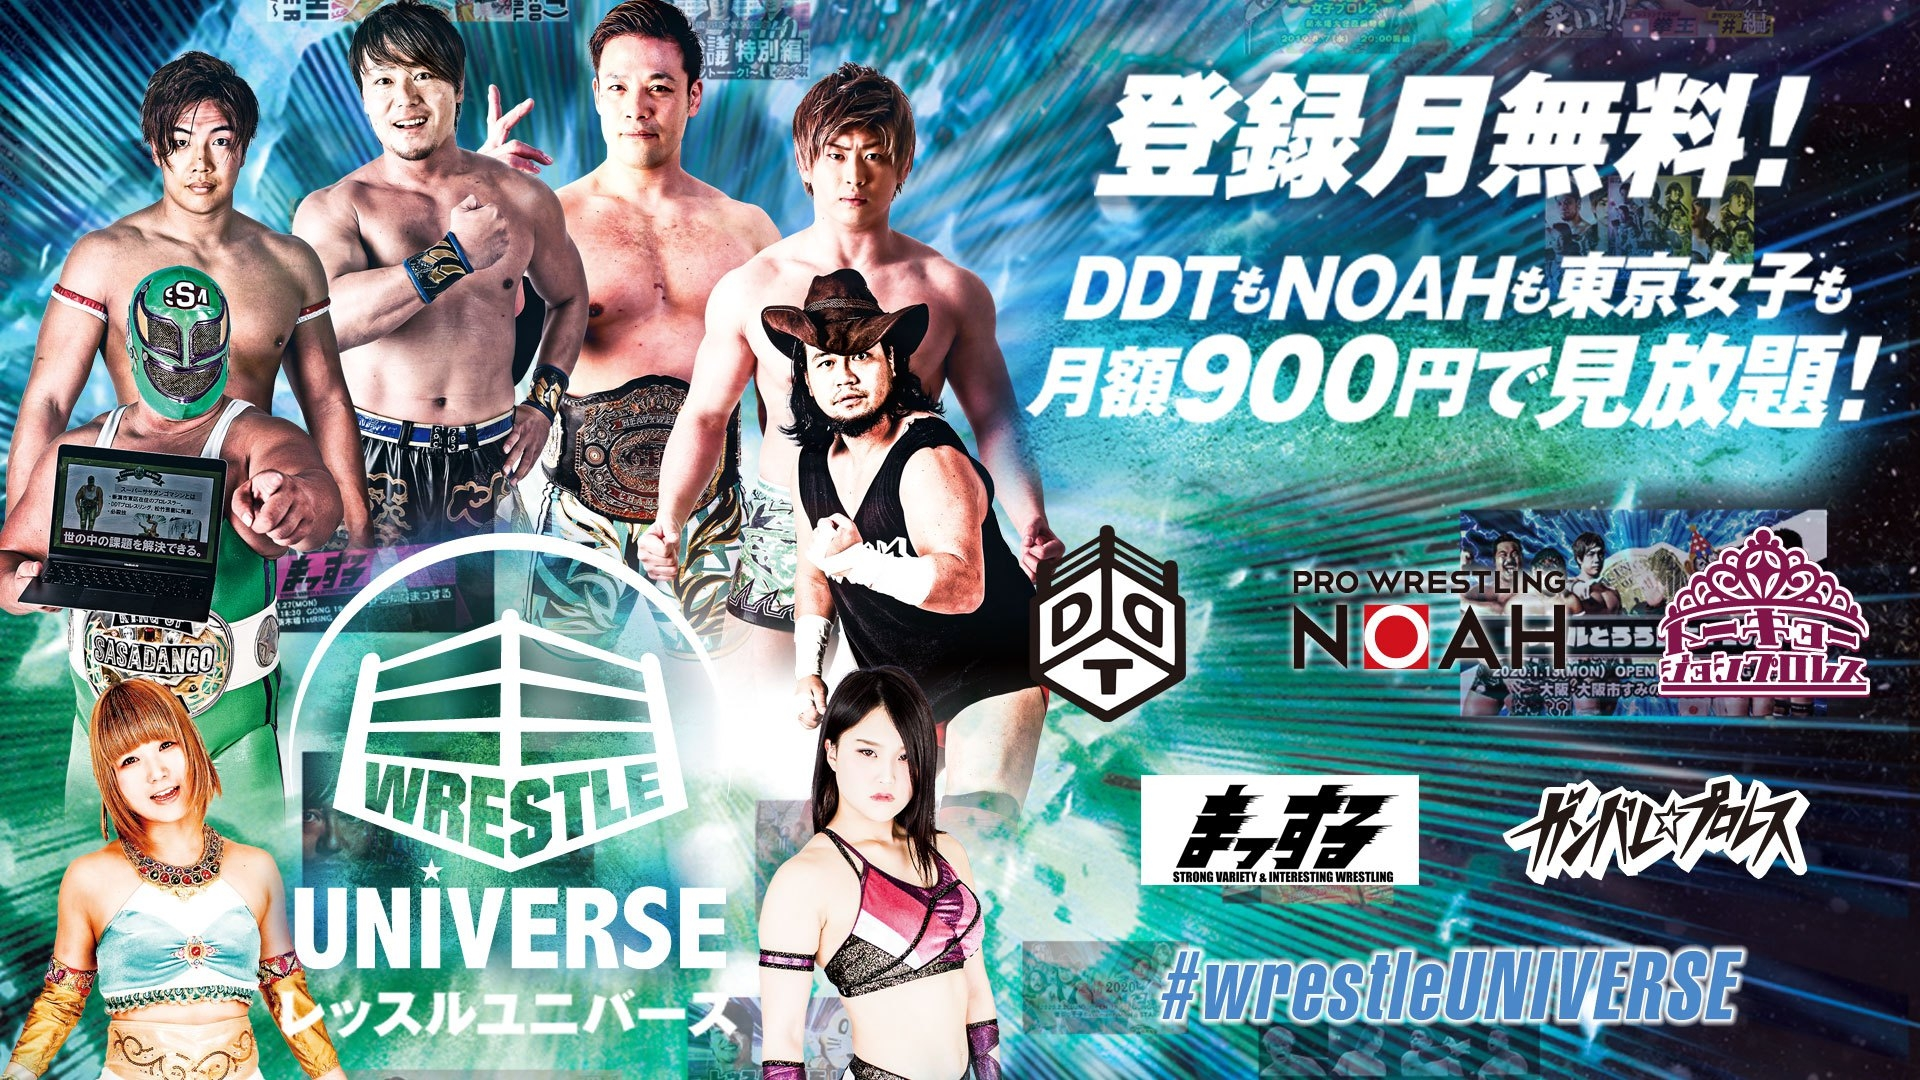 Poster announcing the renaming of DDT Universe to WRESTLE Universe